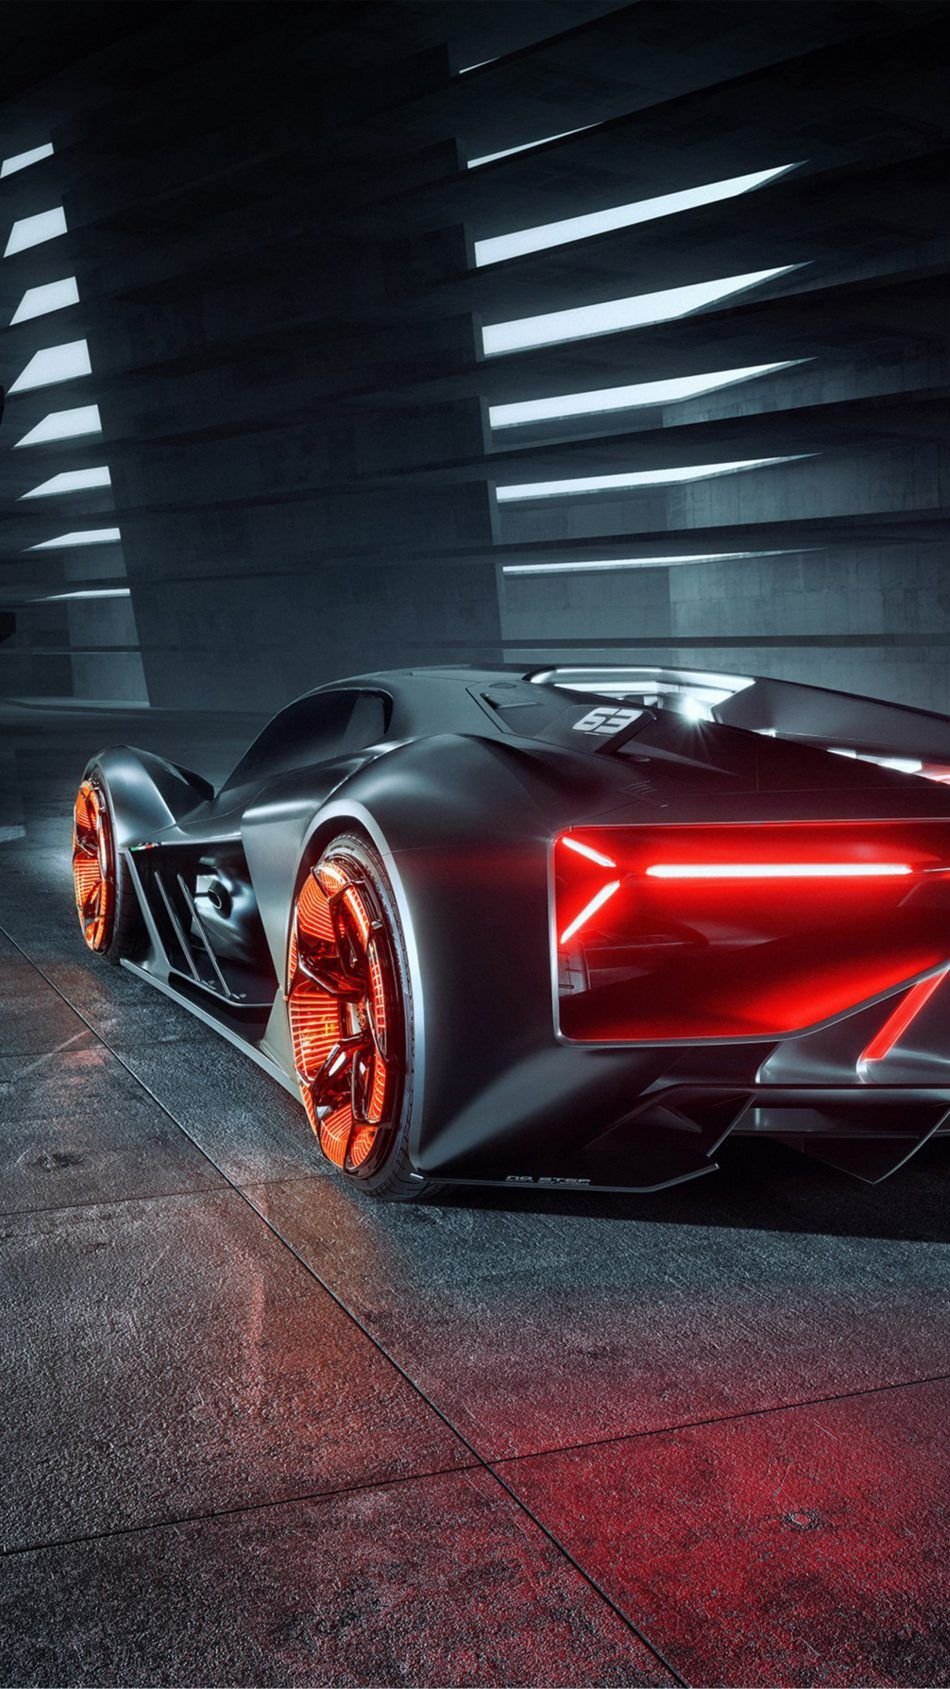 Lamborghini Terzo Millennio Lamborghini Car Wallpapers Super Cars